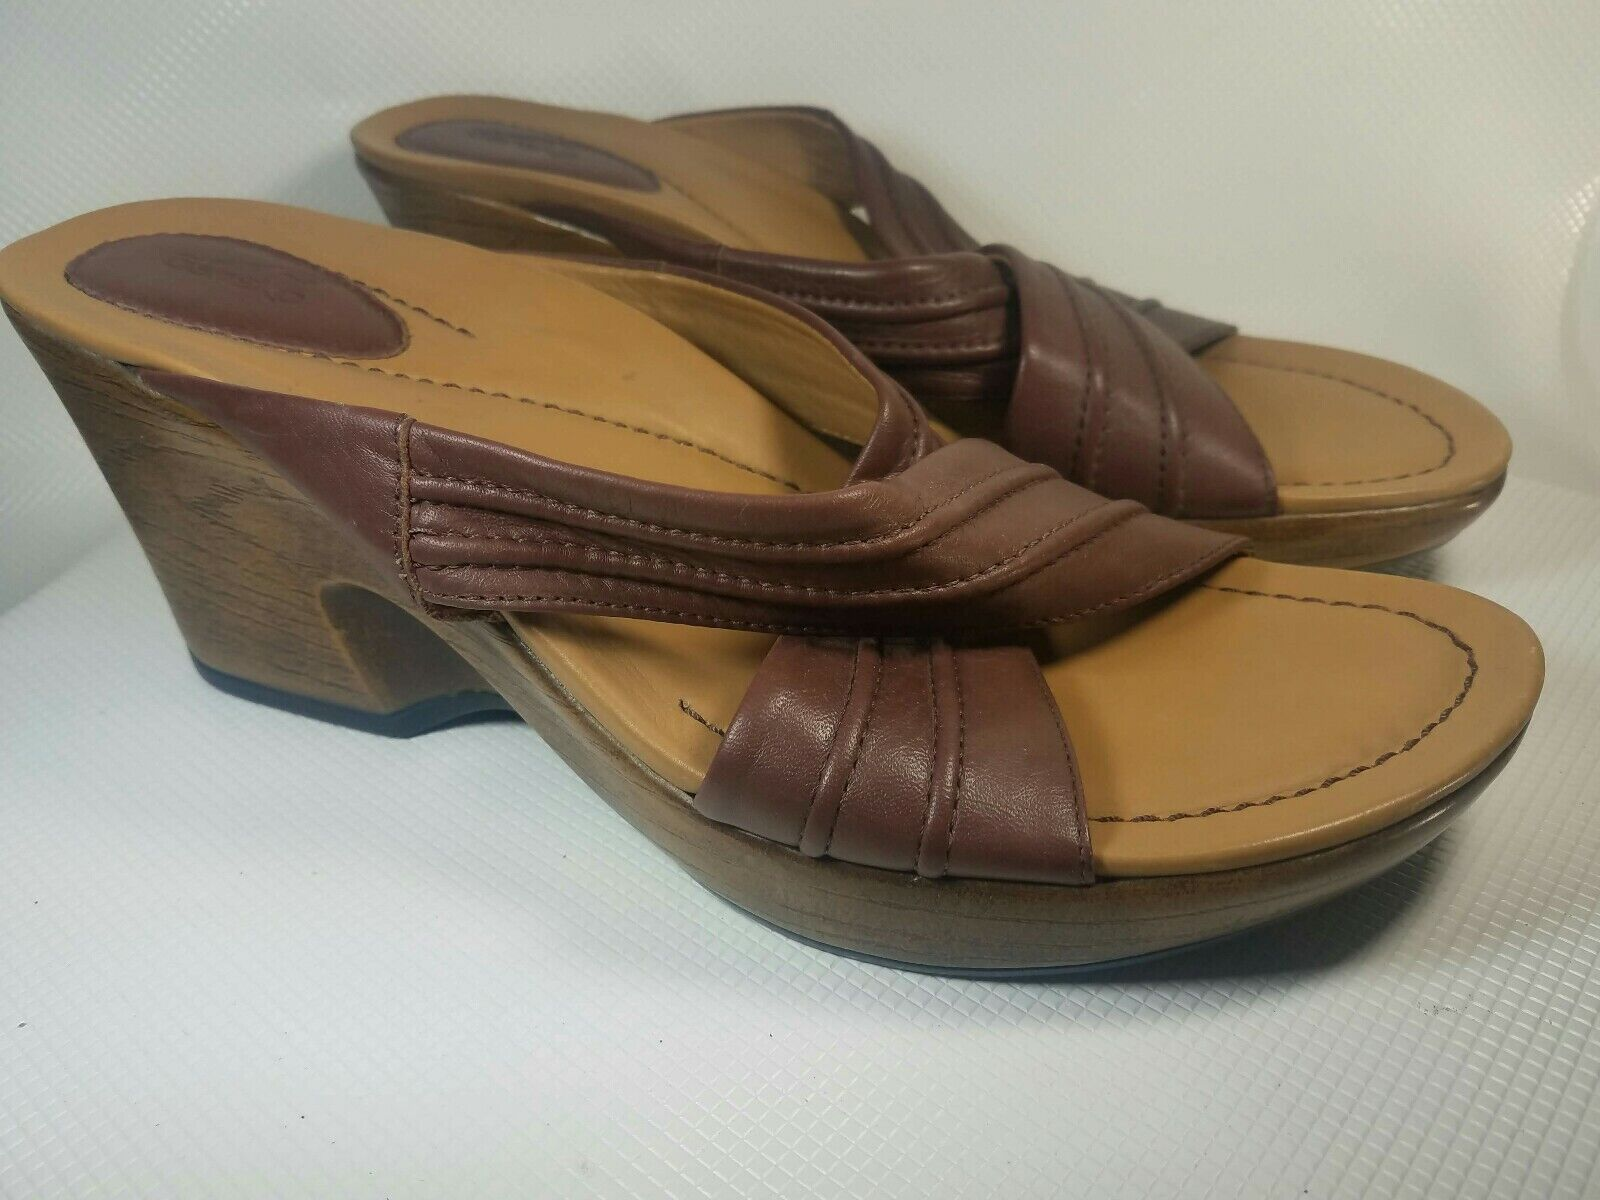 c346a170bd7 Dansko Nolita Brown Leather Slip On Crisscross Strap Wedge Sandal ...